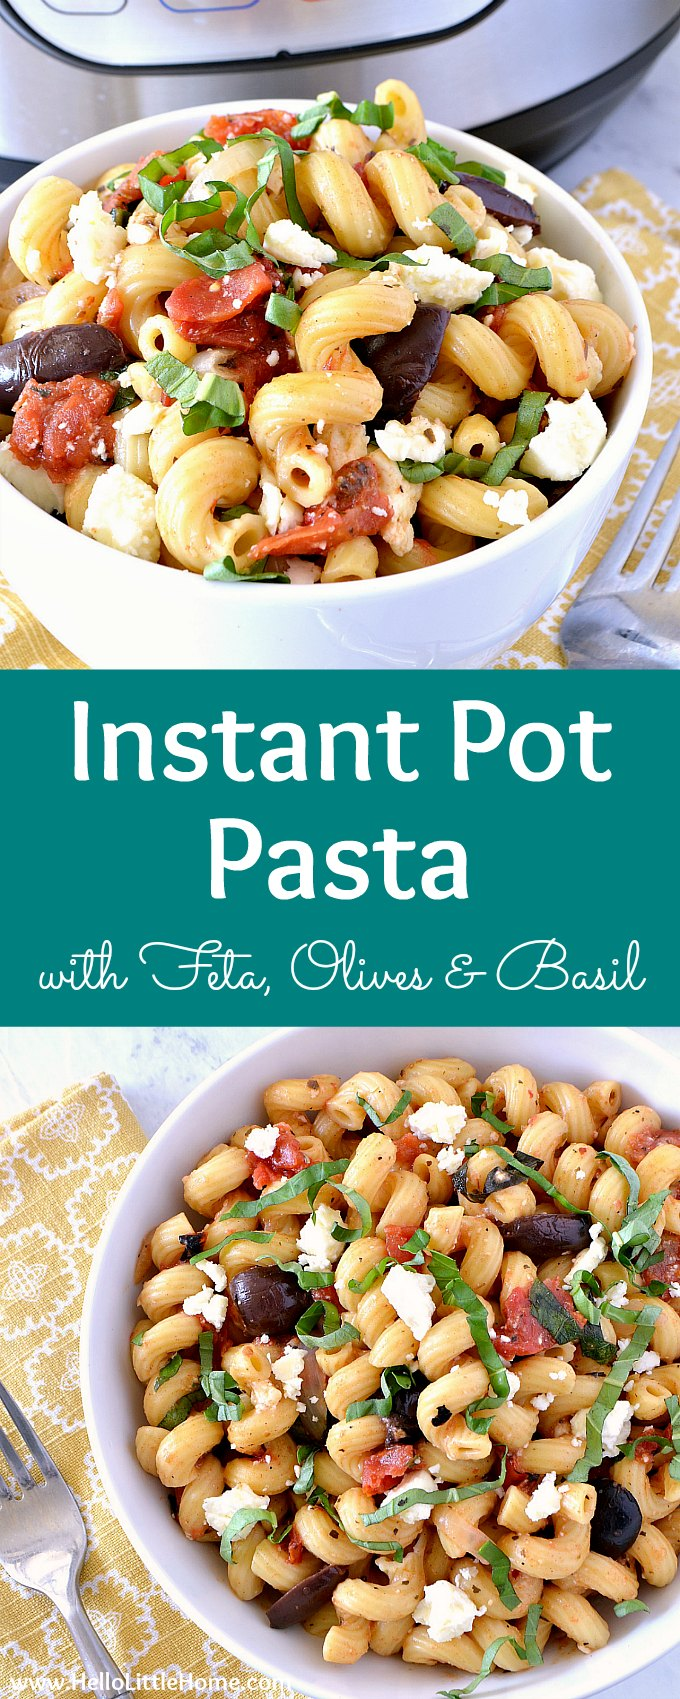 Instant Pot Pasta with Feta, Olives, and Basil! This vegetarian Instant Pot Pasta recipe is simple to make and delicious! Learn how to make Instant Pot Pasta Sauce with tomatoes, feta cheese, Kalamata olives, garlic, and fresh basil. This easy pressure cooker noodle recipe cooks up perfectly al dente for a fast, healthy meatless dinner! Vegan friendly (just skip the feta)! | Hello Little Home #instantpot #instantpotrecipe #instantpotpasta #pressurecooker #vegetarianrecipes #pasta #pastarecipe